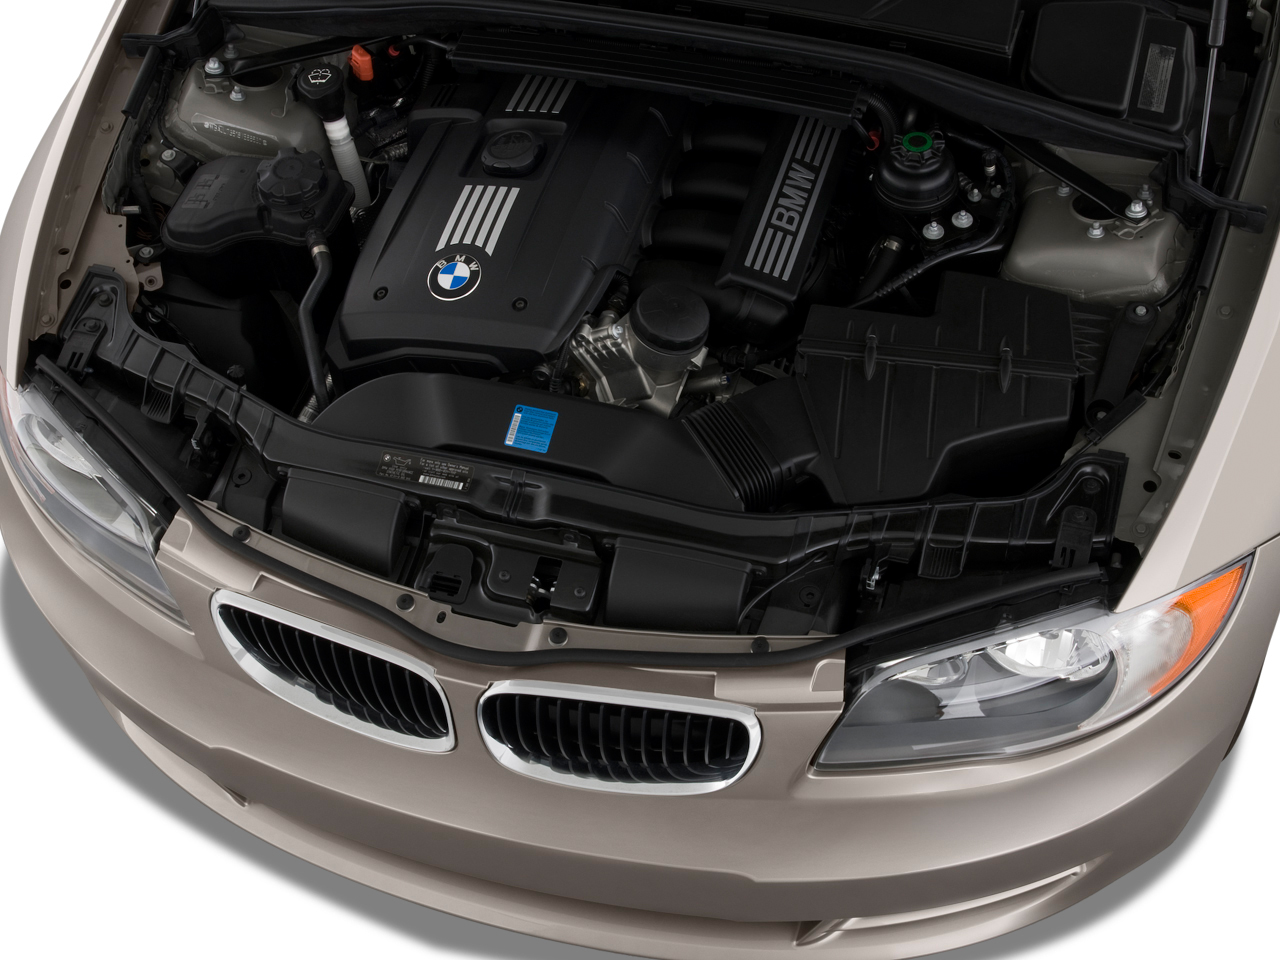 Location of oil dipstick in bmw 3 series location free for Bmw 335i motor oil